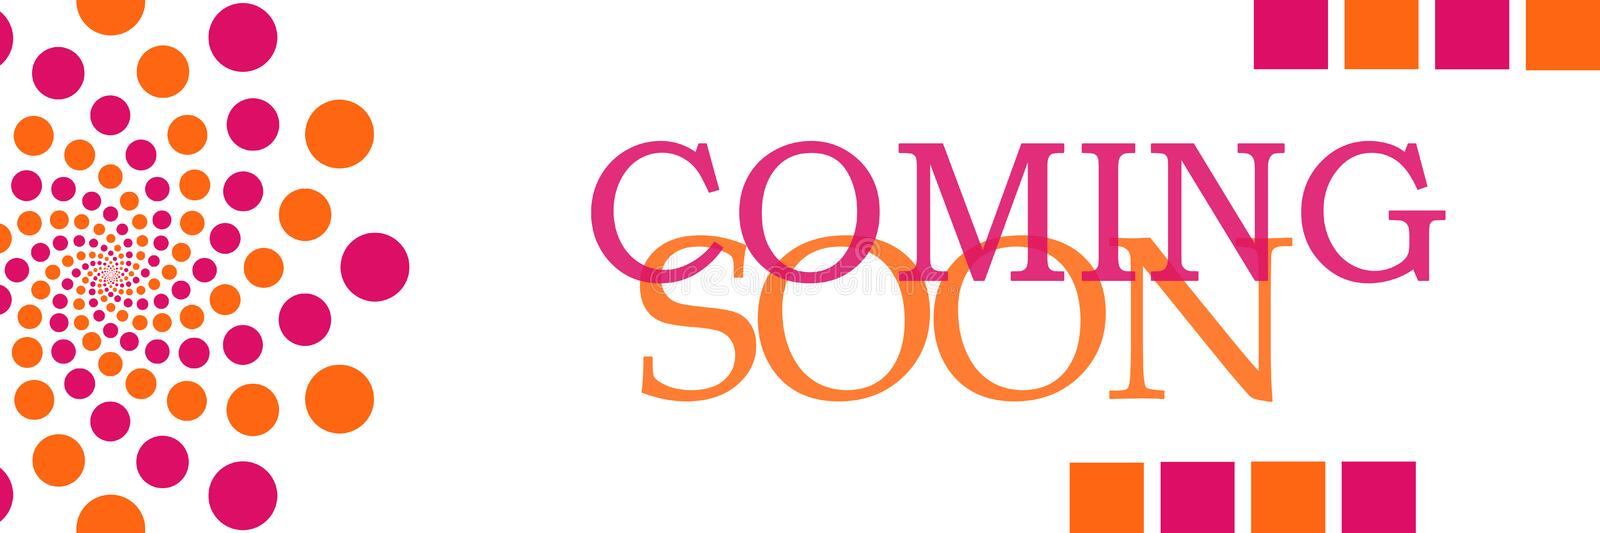 Coming Soon Pink Orange Dots Horizontal. Coming soon text written over pink orange background stock illustration